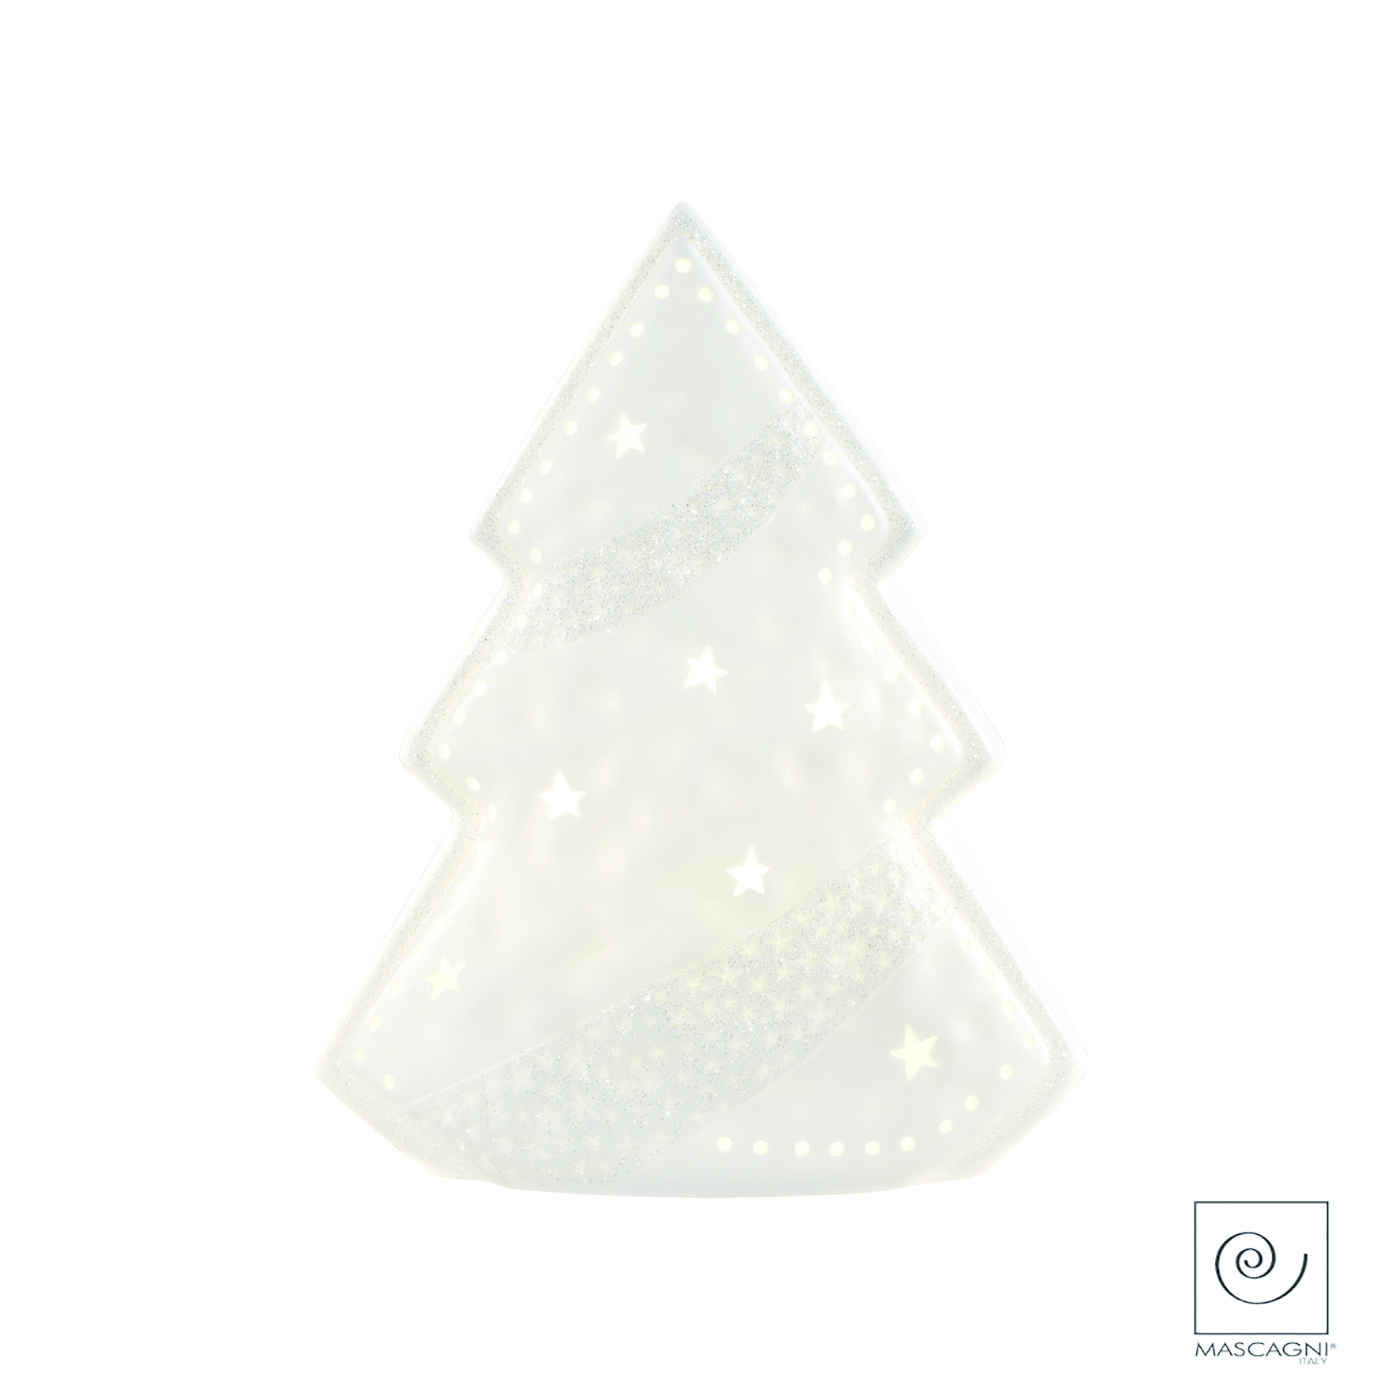 Art Mascagni LED TREE CM.17